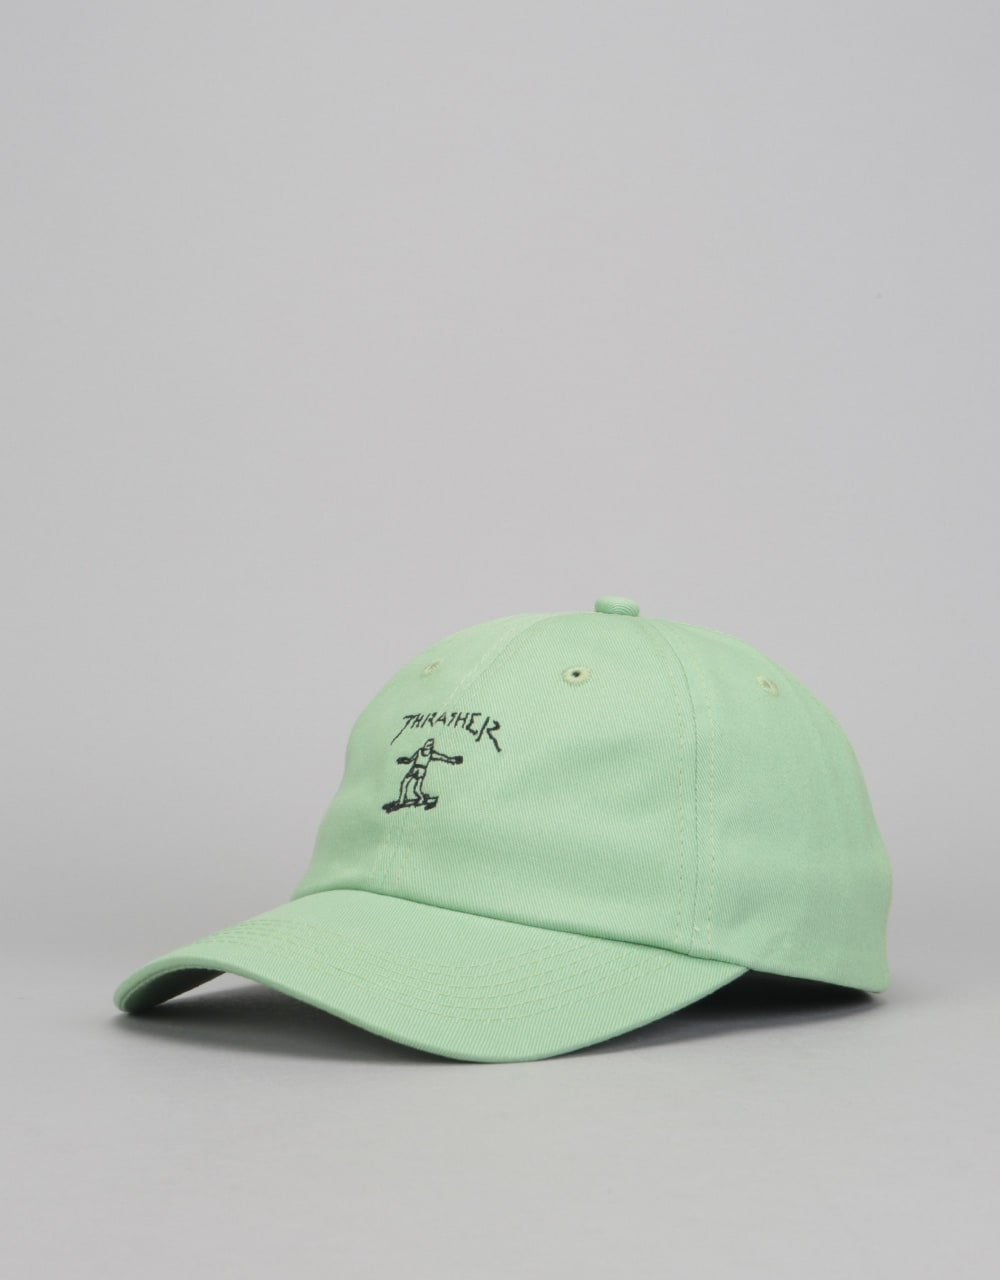 8ff2d307 Thrasher Gonz Old Timer Cap - Mint | Bags & Backpacks | Beanies, Caps & Hats  | Skate Accessories | Route One